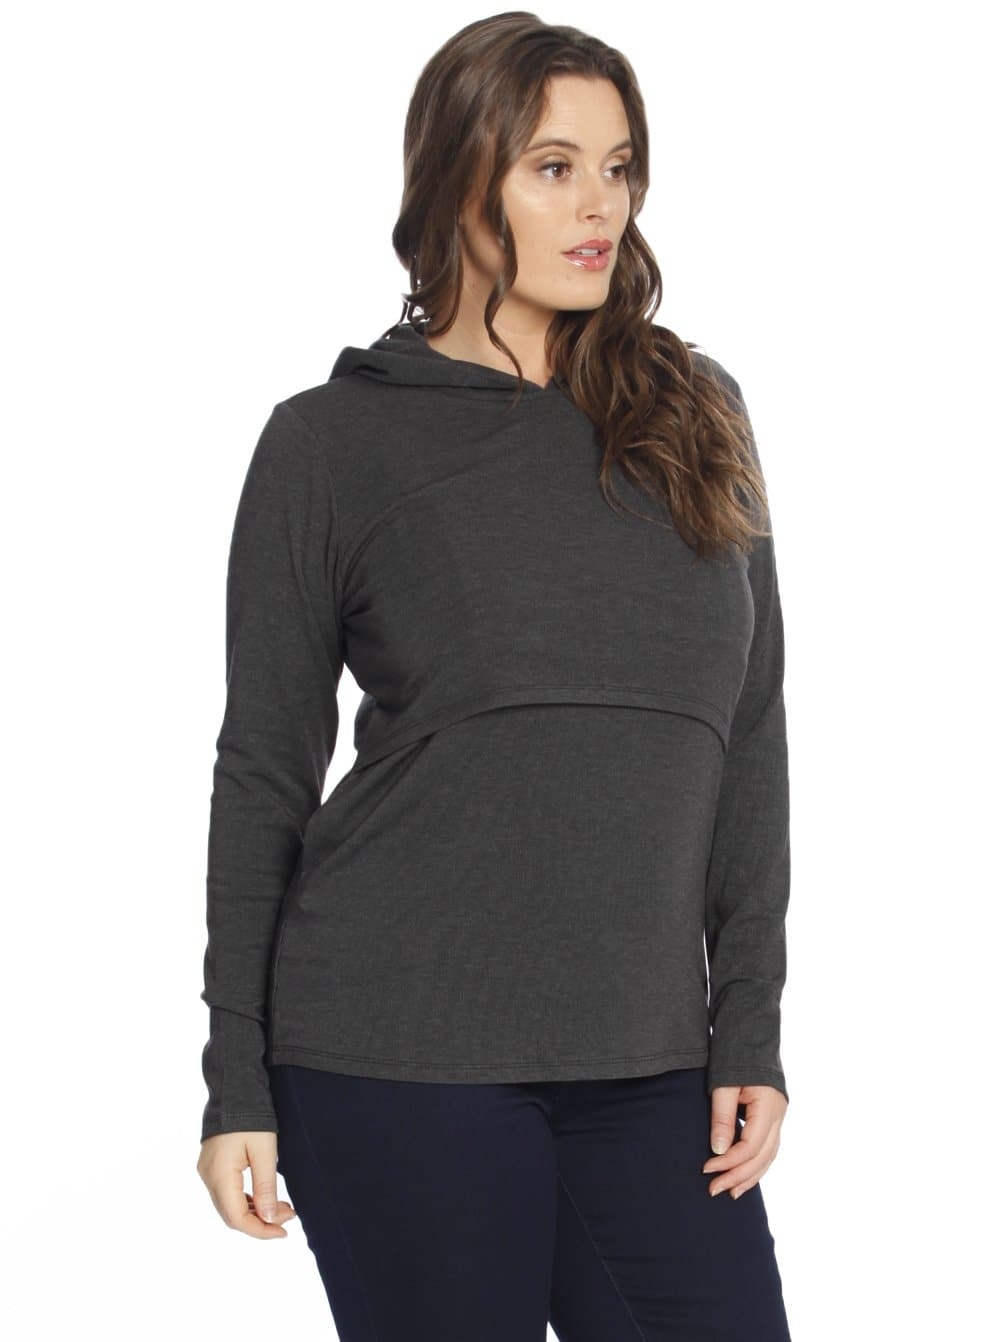 Nursing Hoodie Breastfeeding Jumper Top - Grey